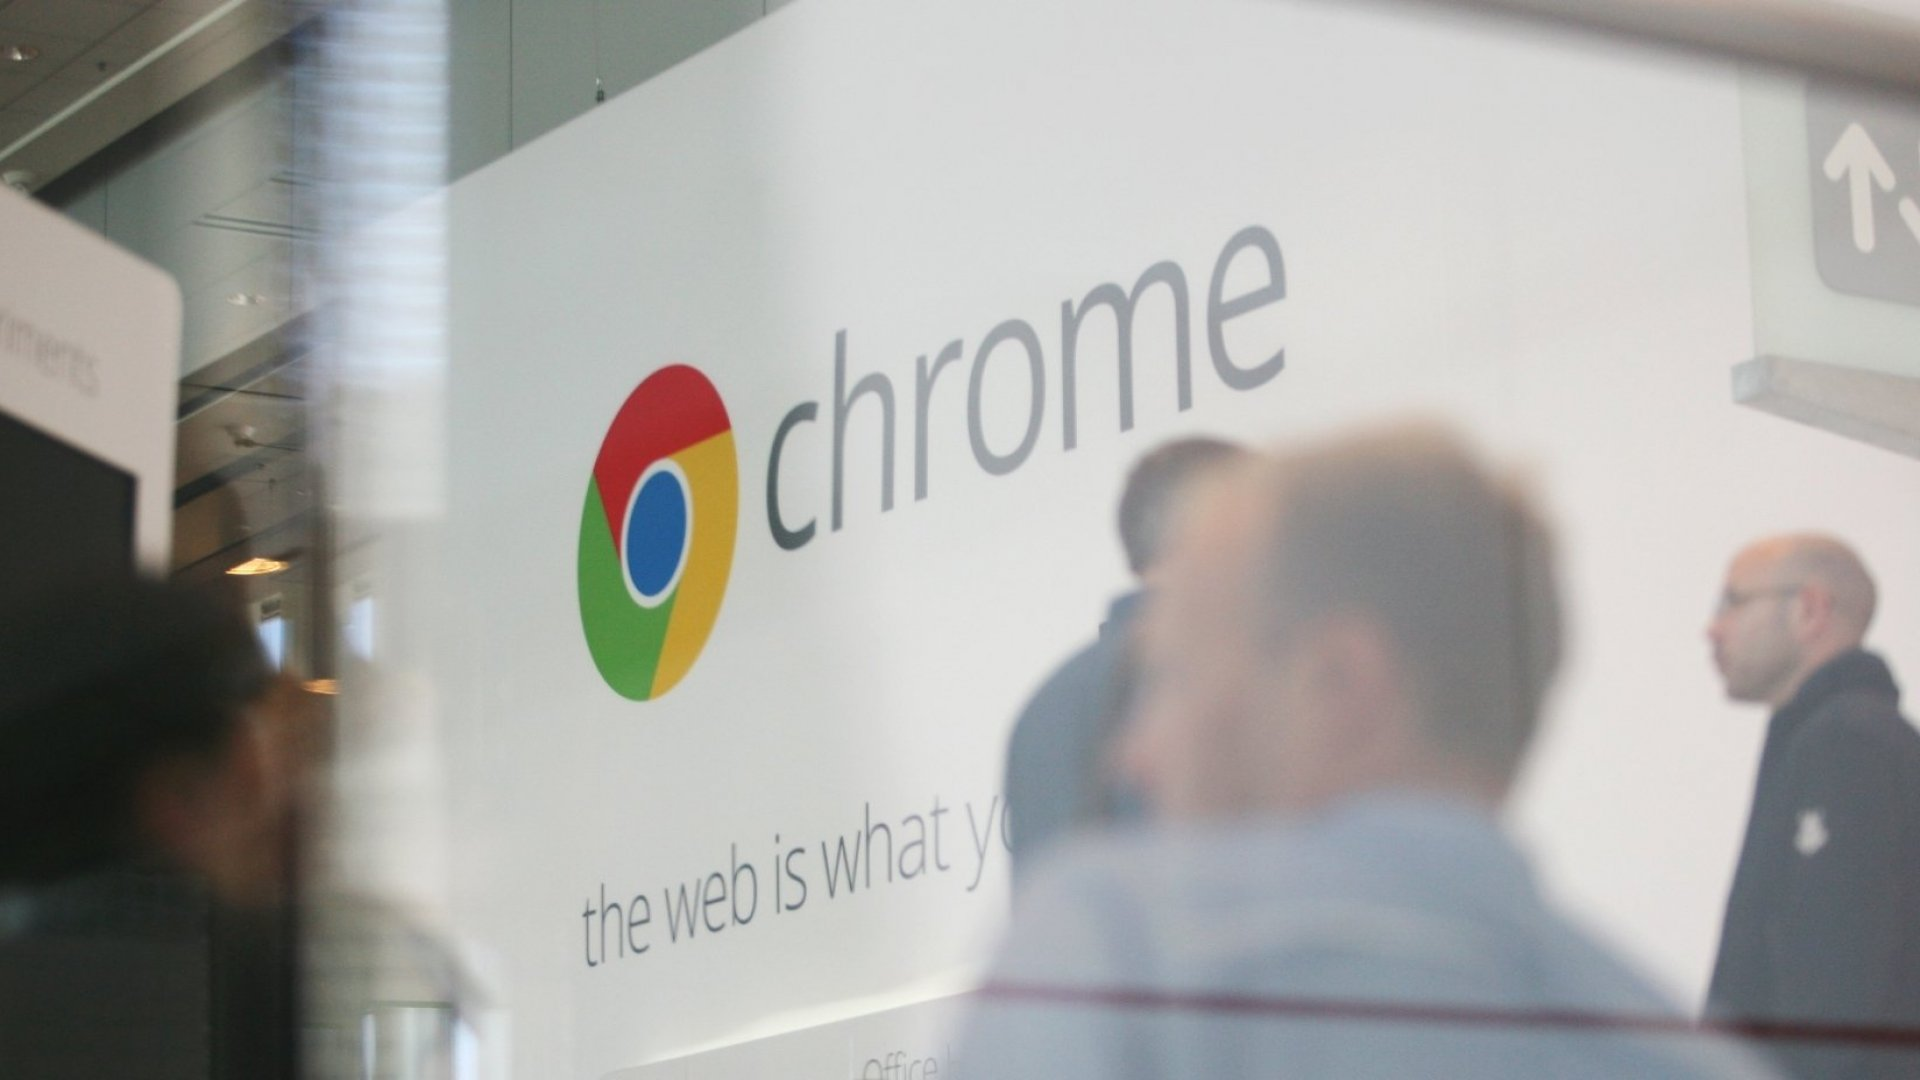 Does Your Website Load Slowly? Google Chrome May Start Punishing You With a Label Warning Users About the Wait